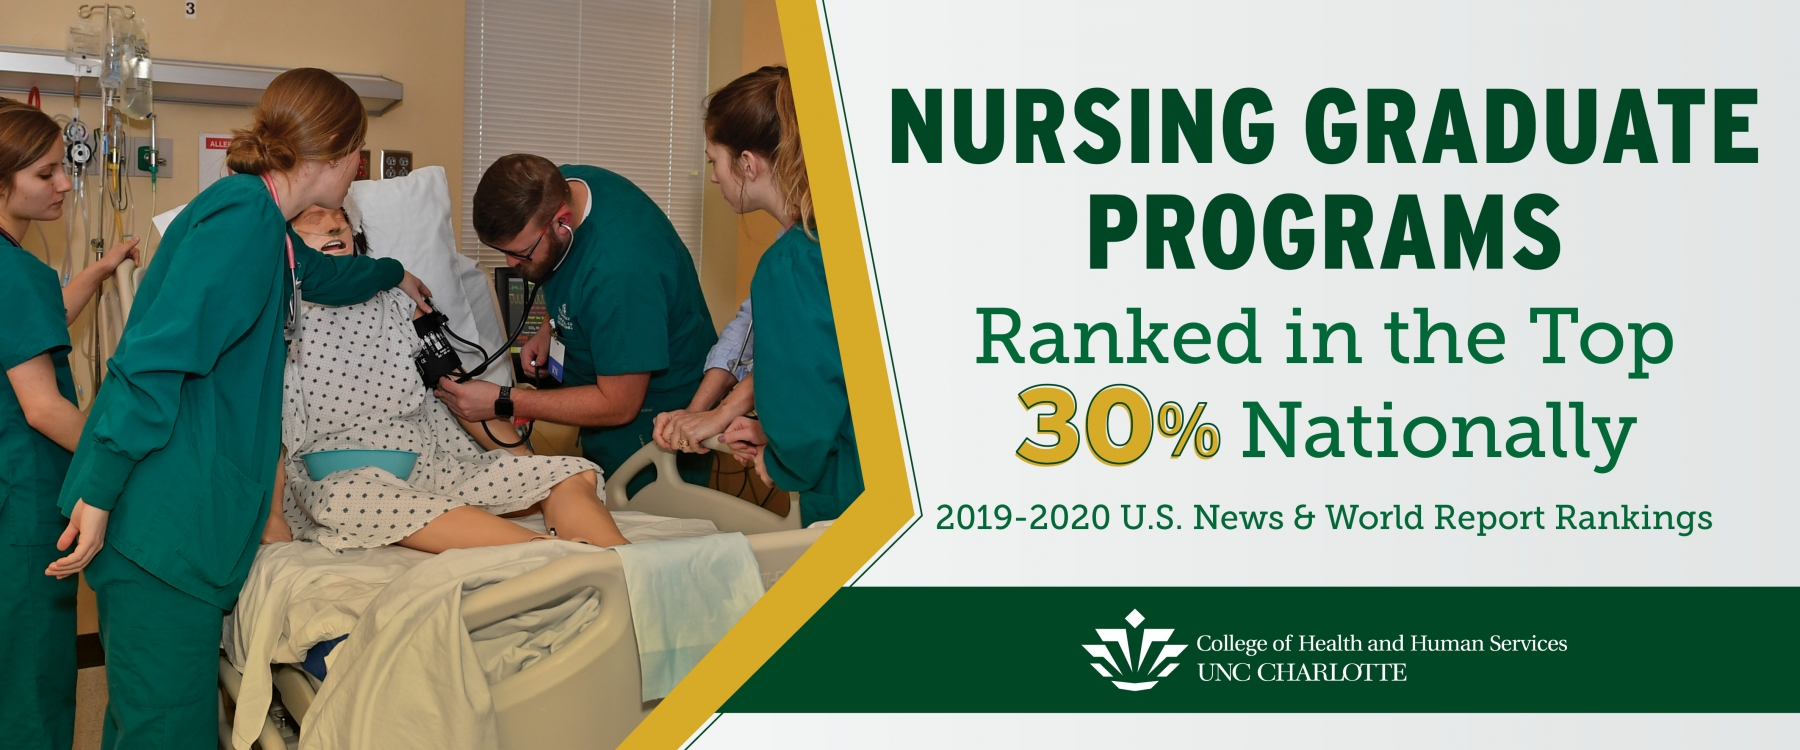 School of Nursing U.S. News and World Report rankings